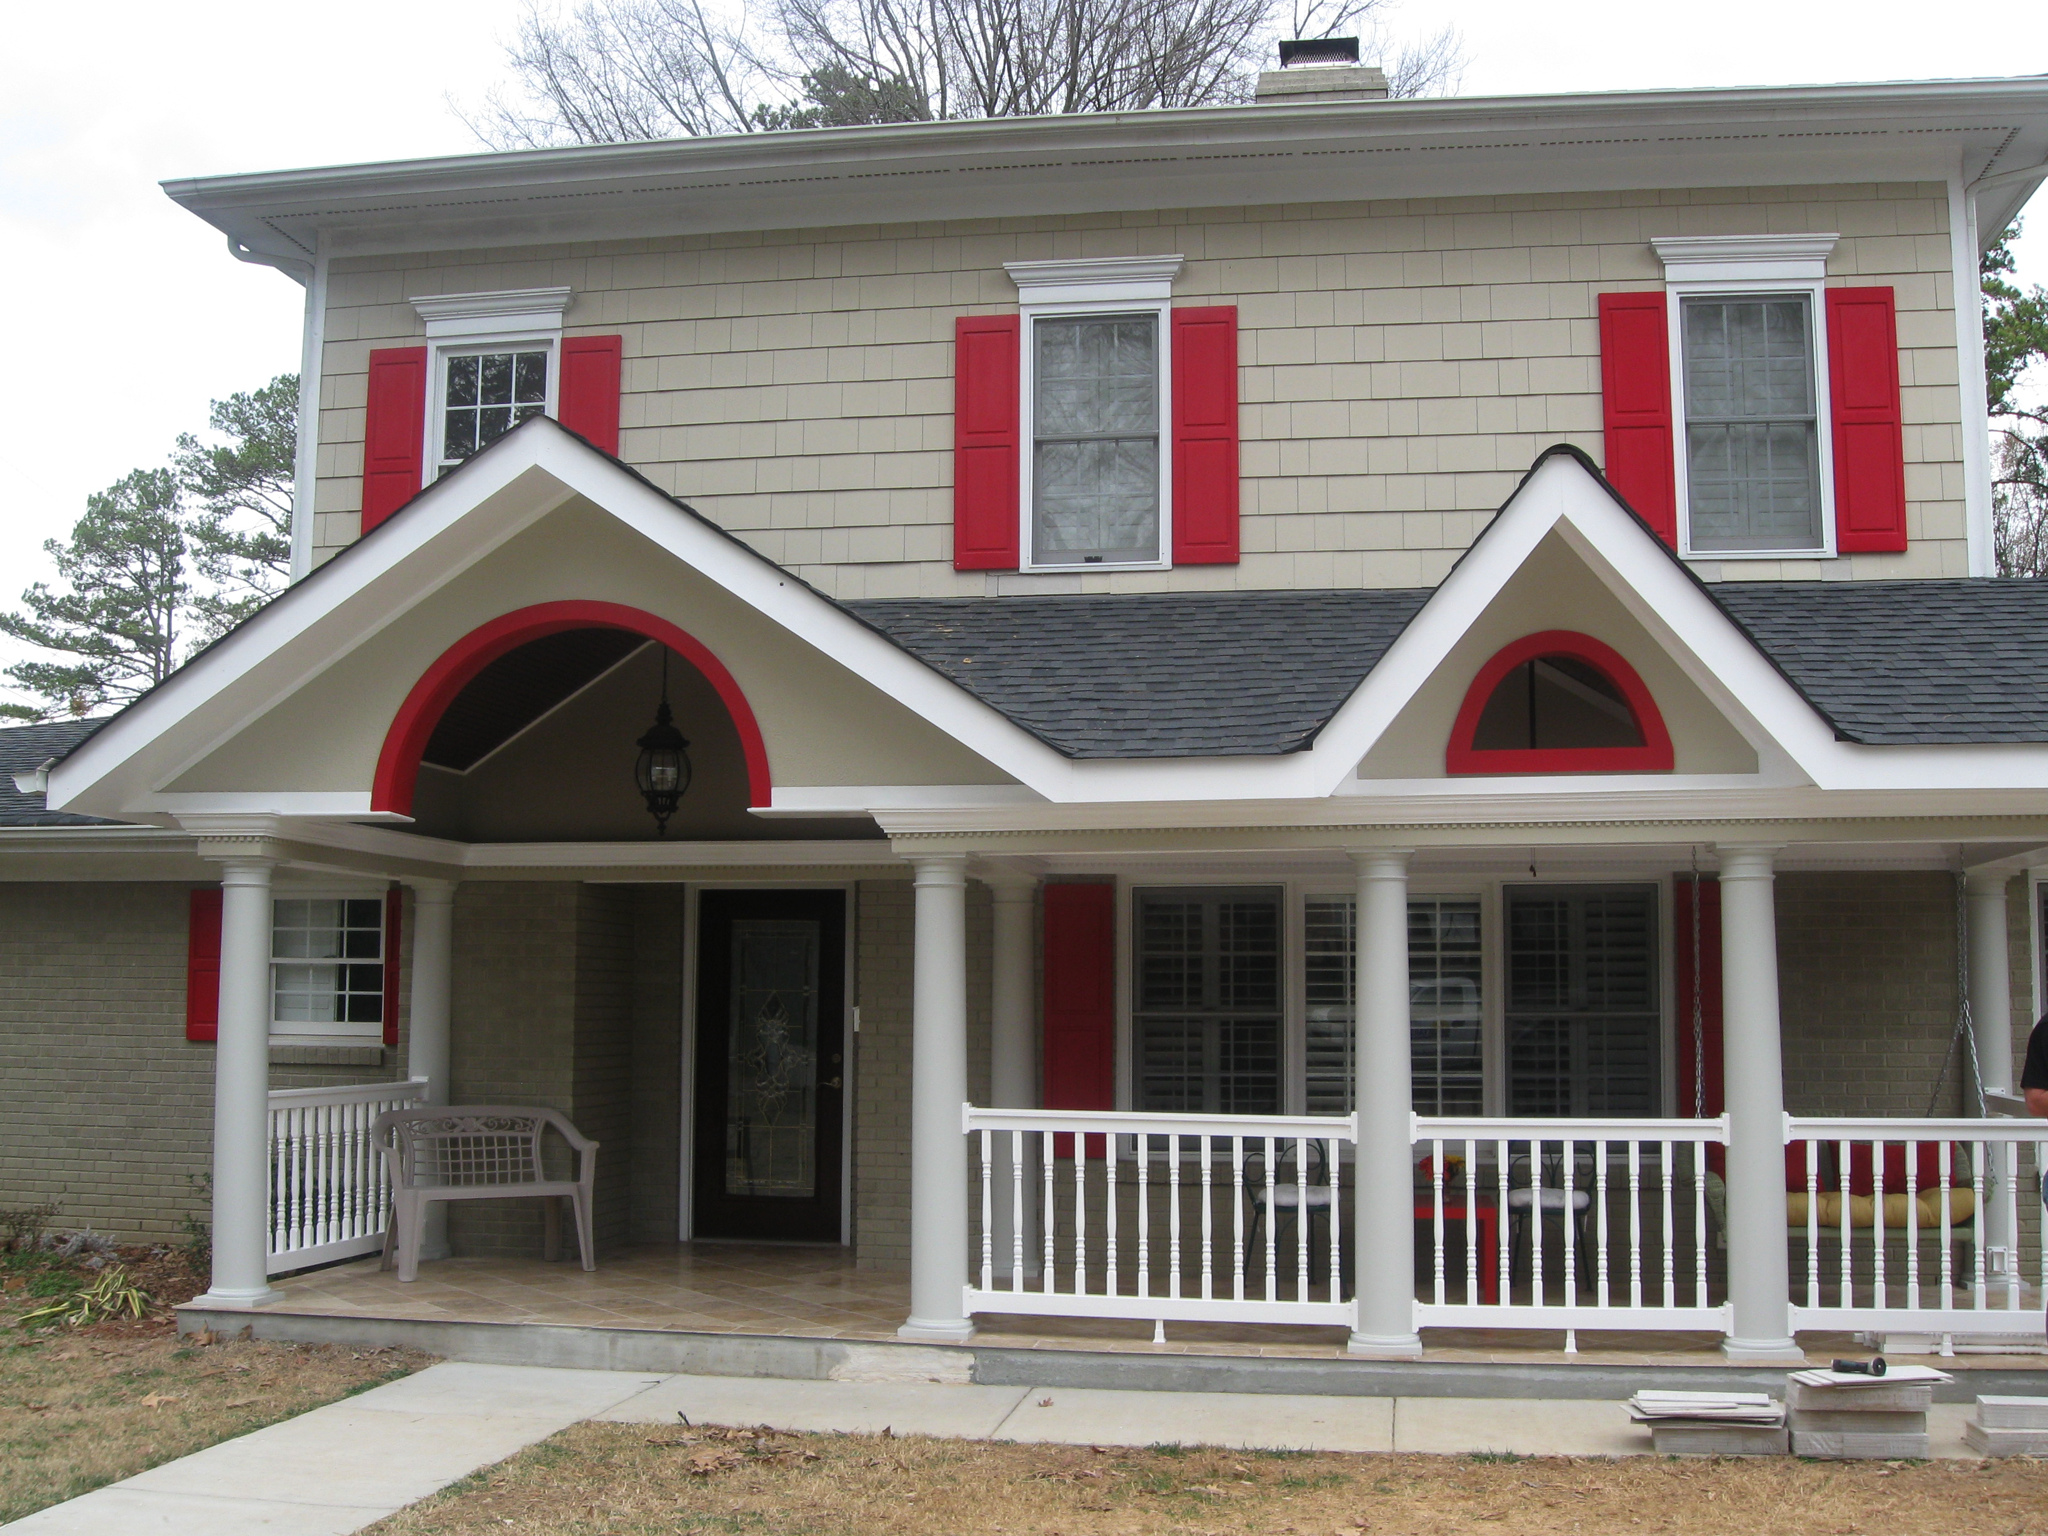 Custom porch by archadeck of charlotte in myers park area with round fiberglass columns and vinyl